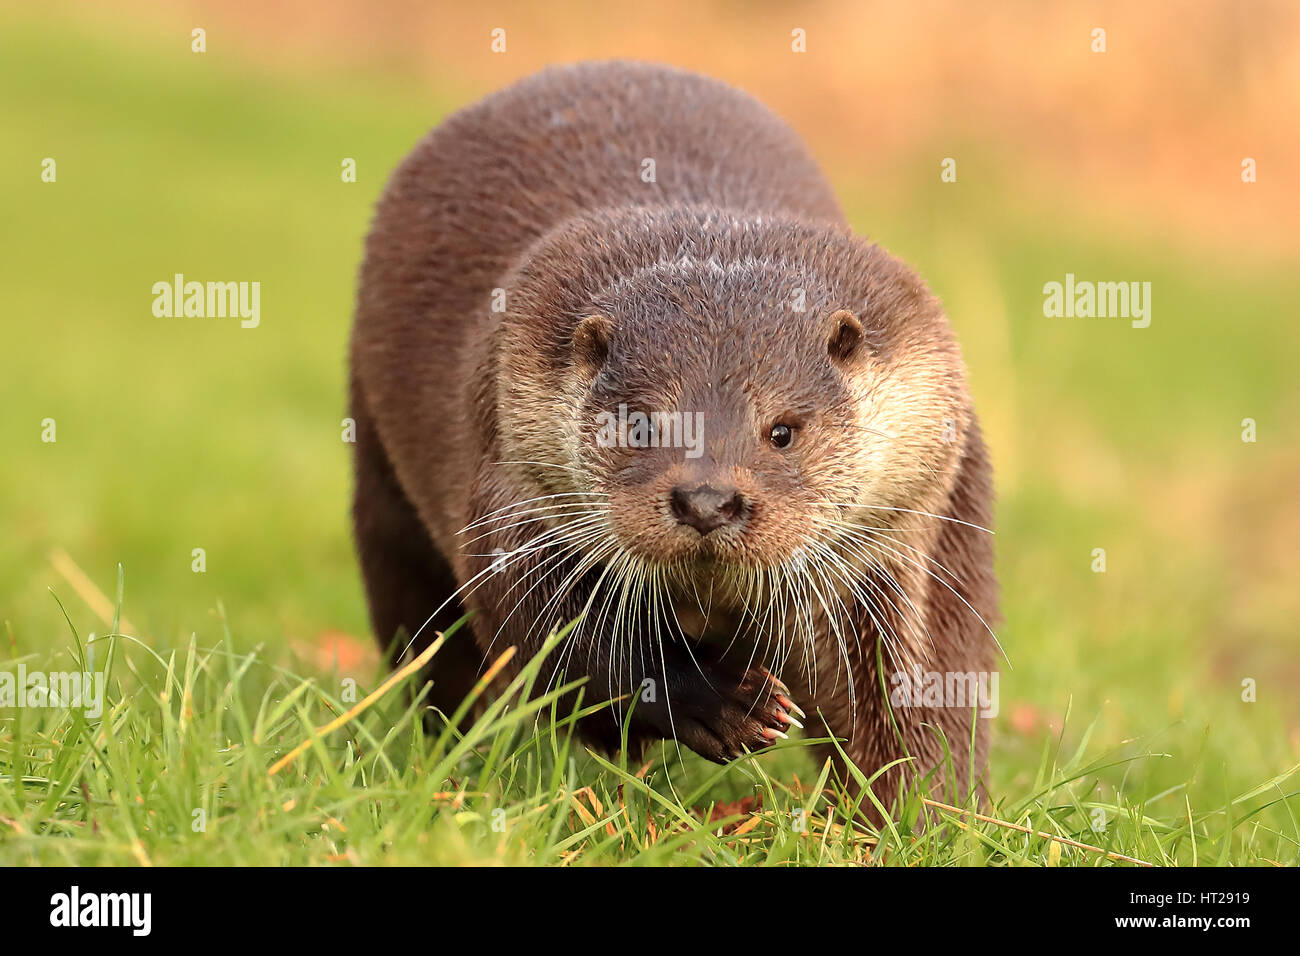 Otter running head on, full frontal beautiful picture - Stock Image